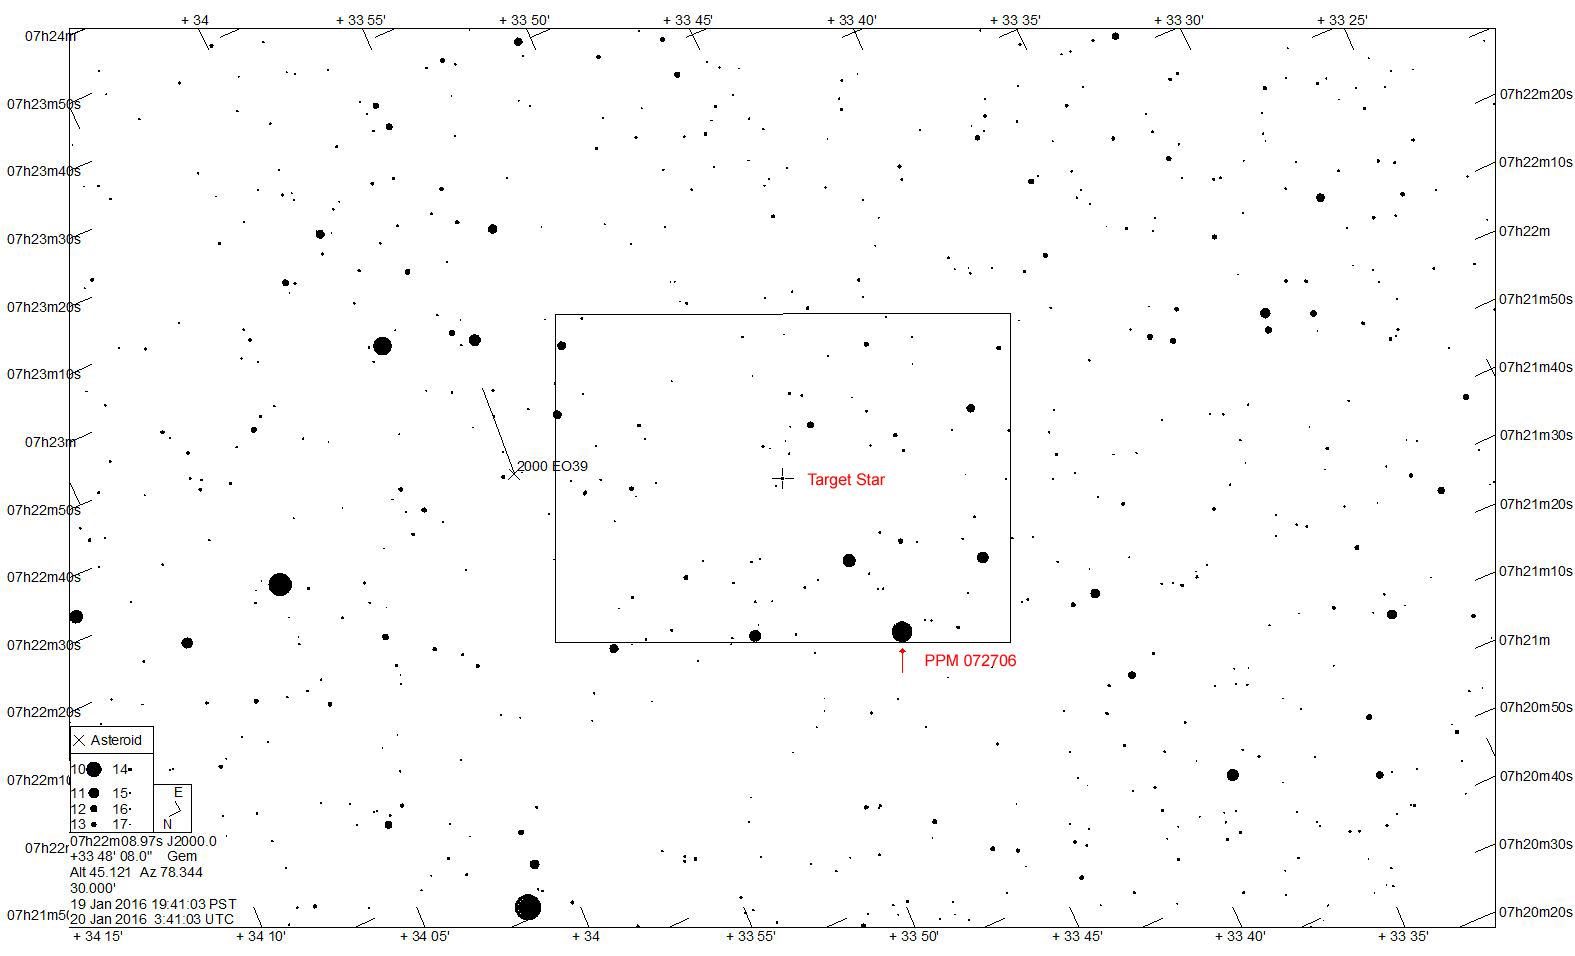 30' Star chart for 03WL7 on 2016 January 20 UTC